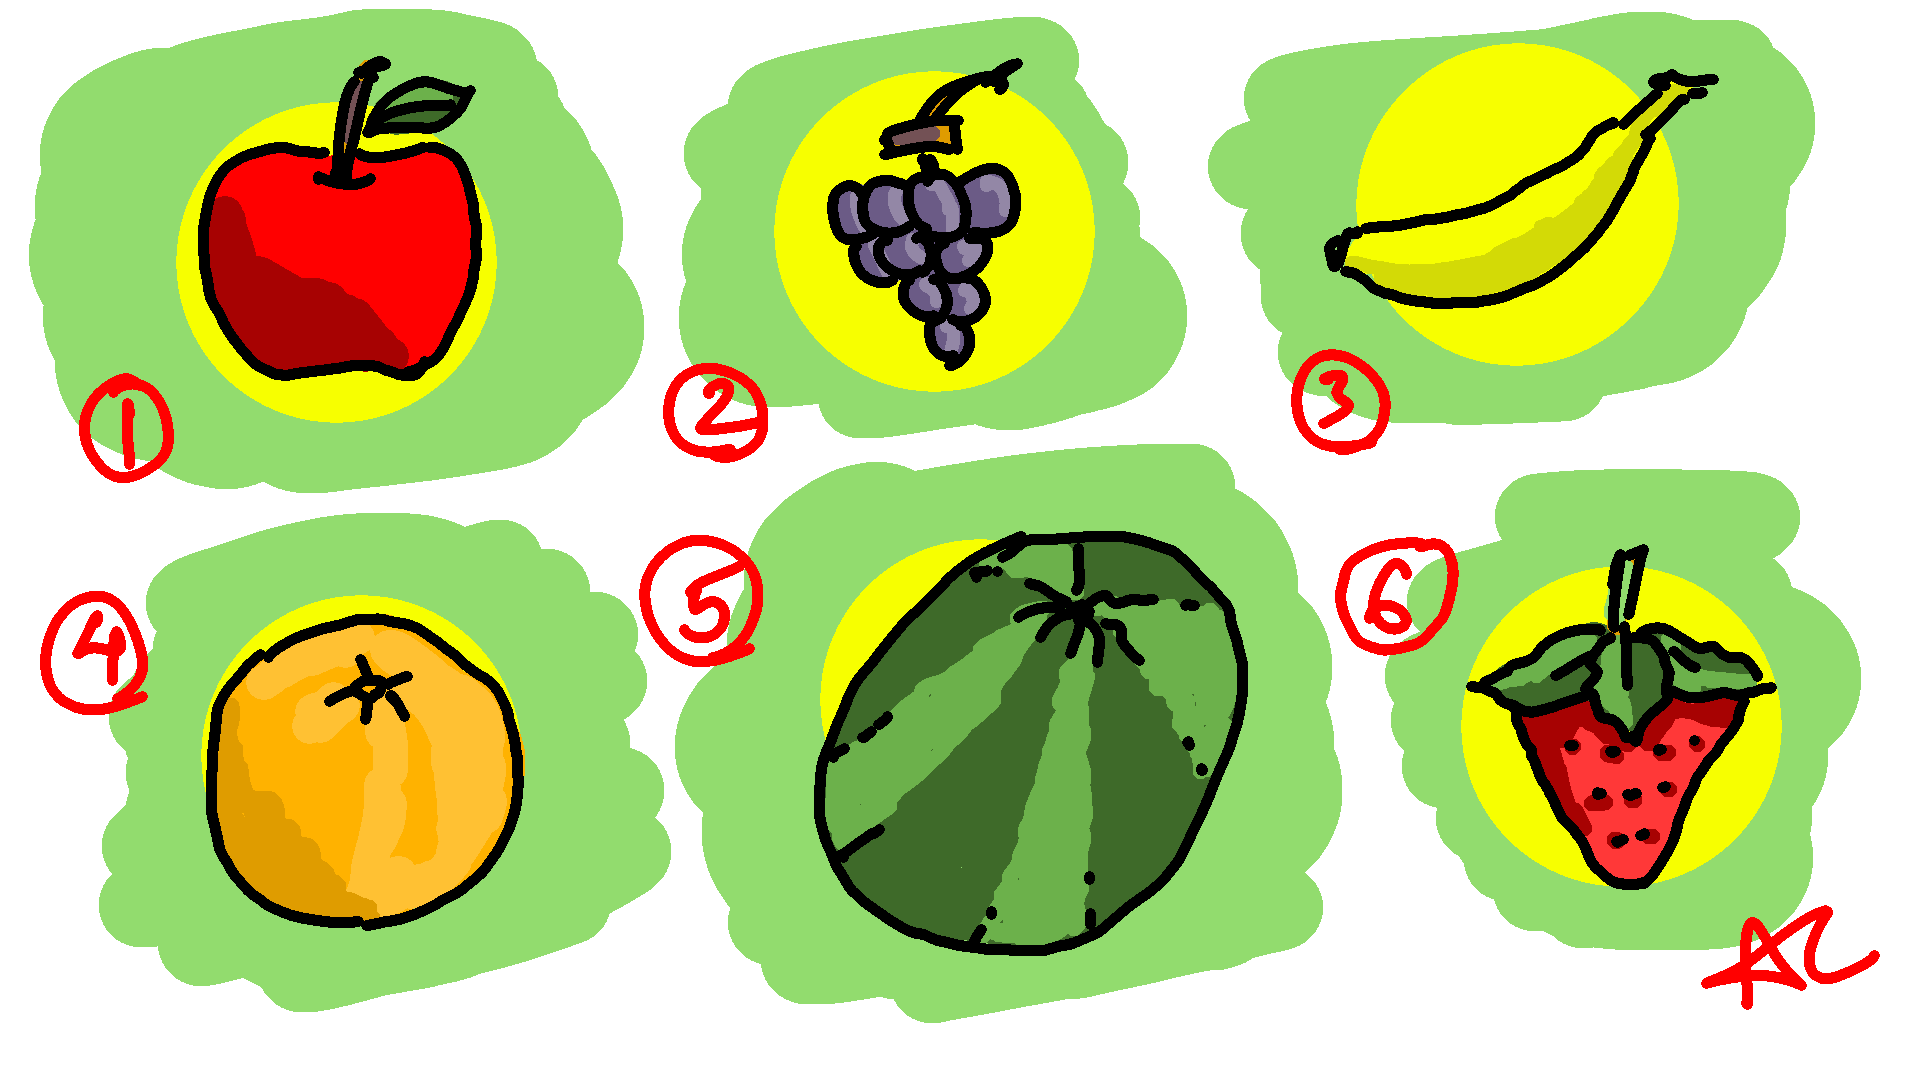 001_FruitIcons.png